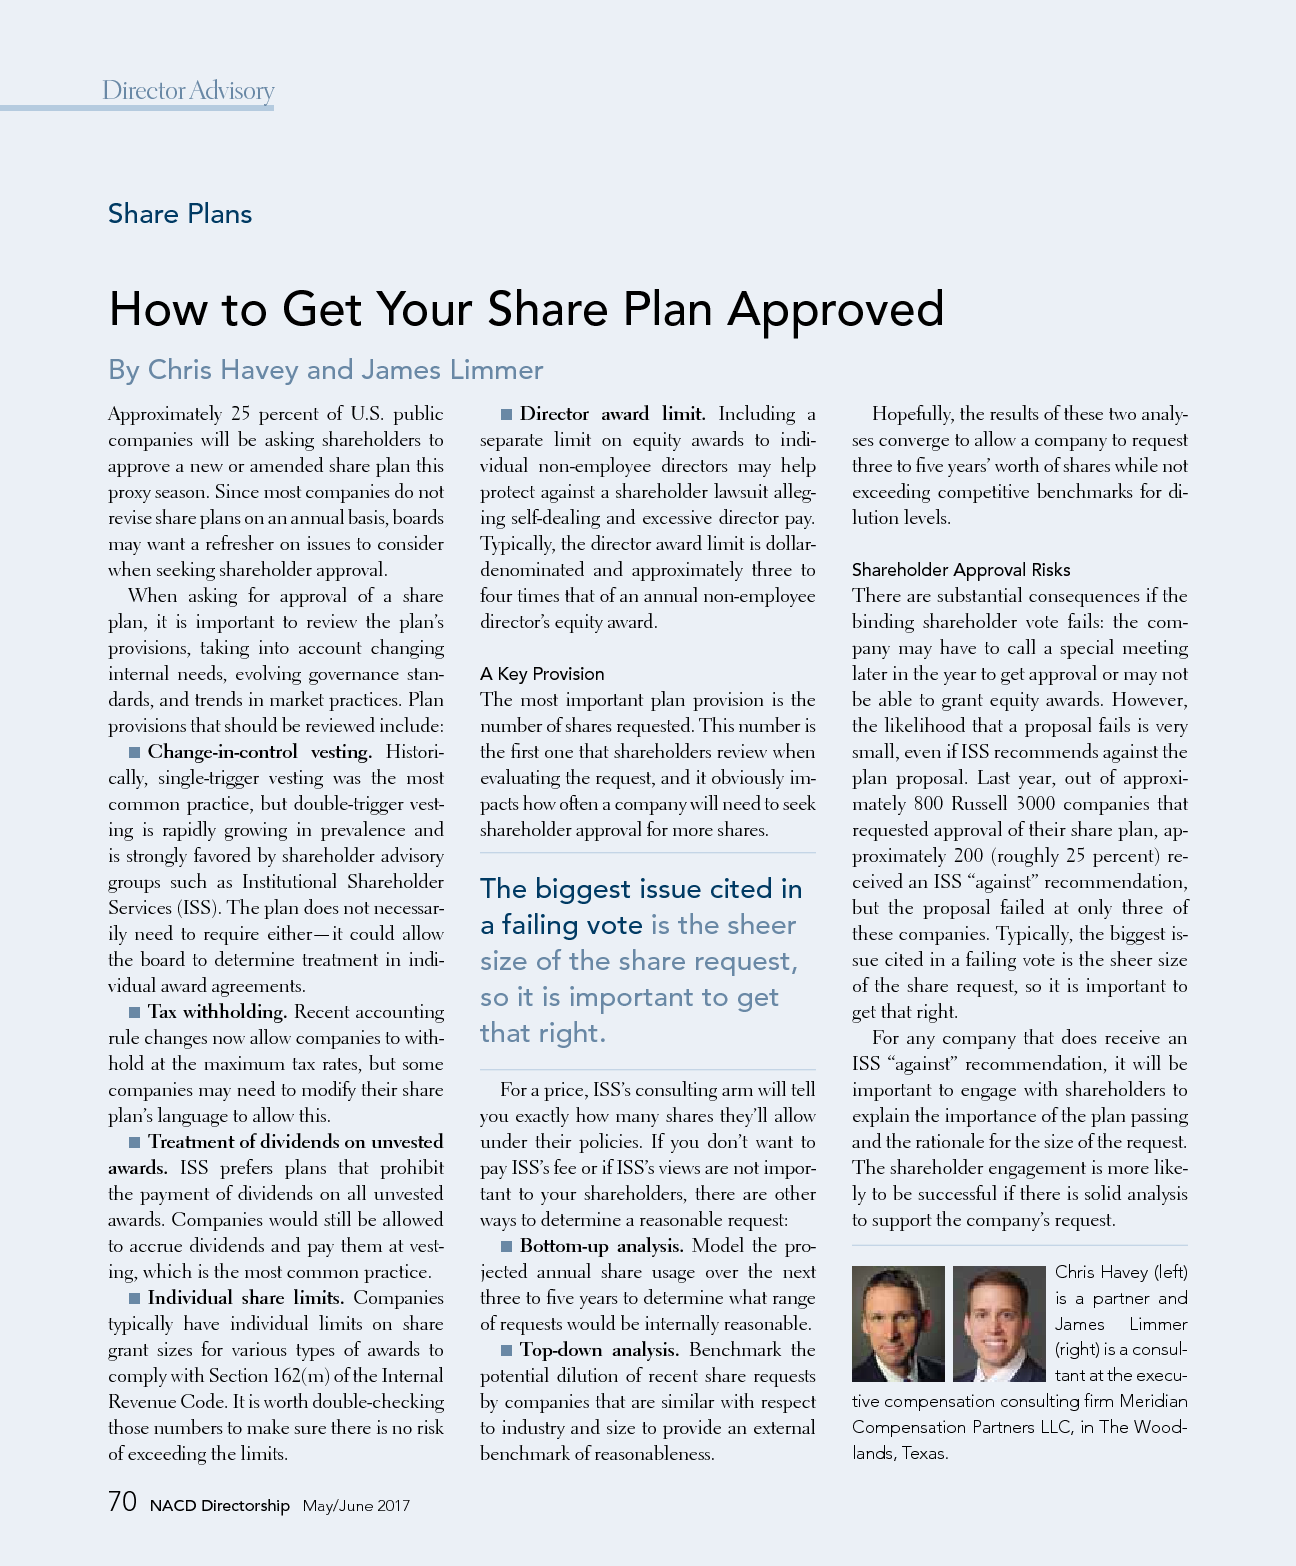 How to Get Your Share Plan Approved (PDF)